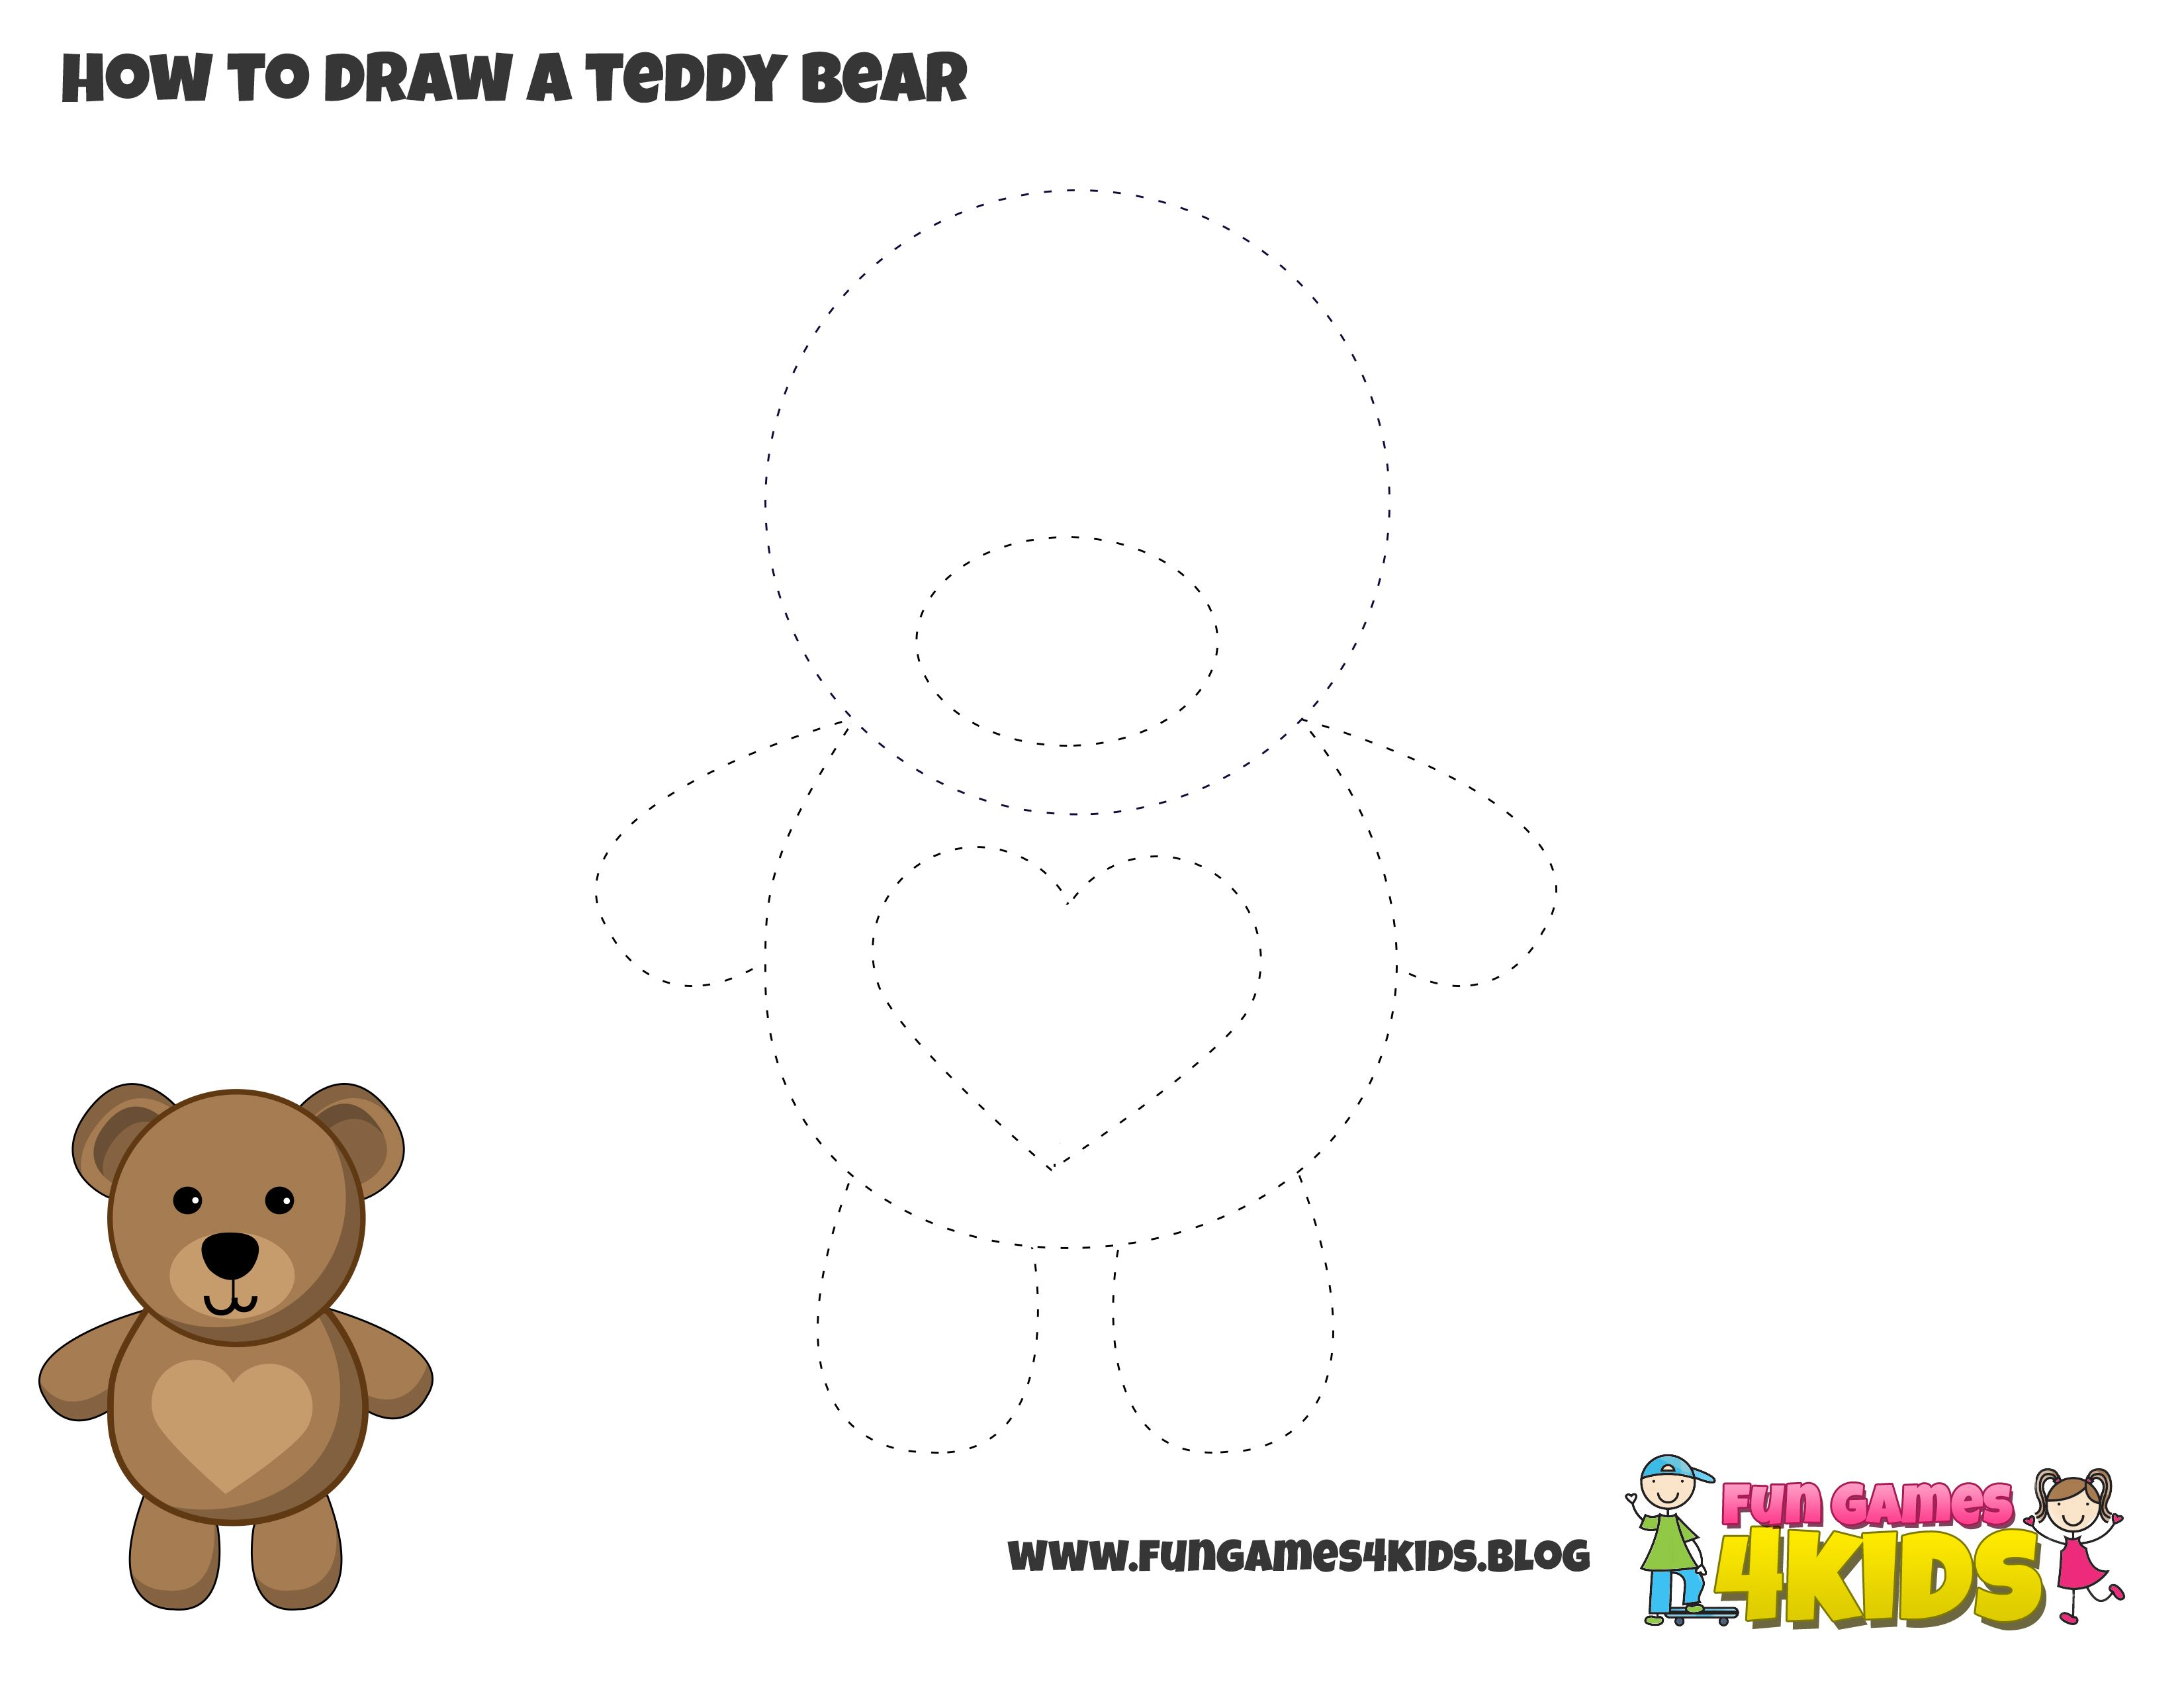 How To Draw A Teddy Bear From Fungames4kidsub